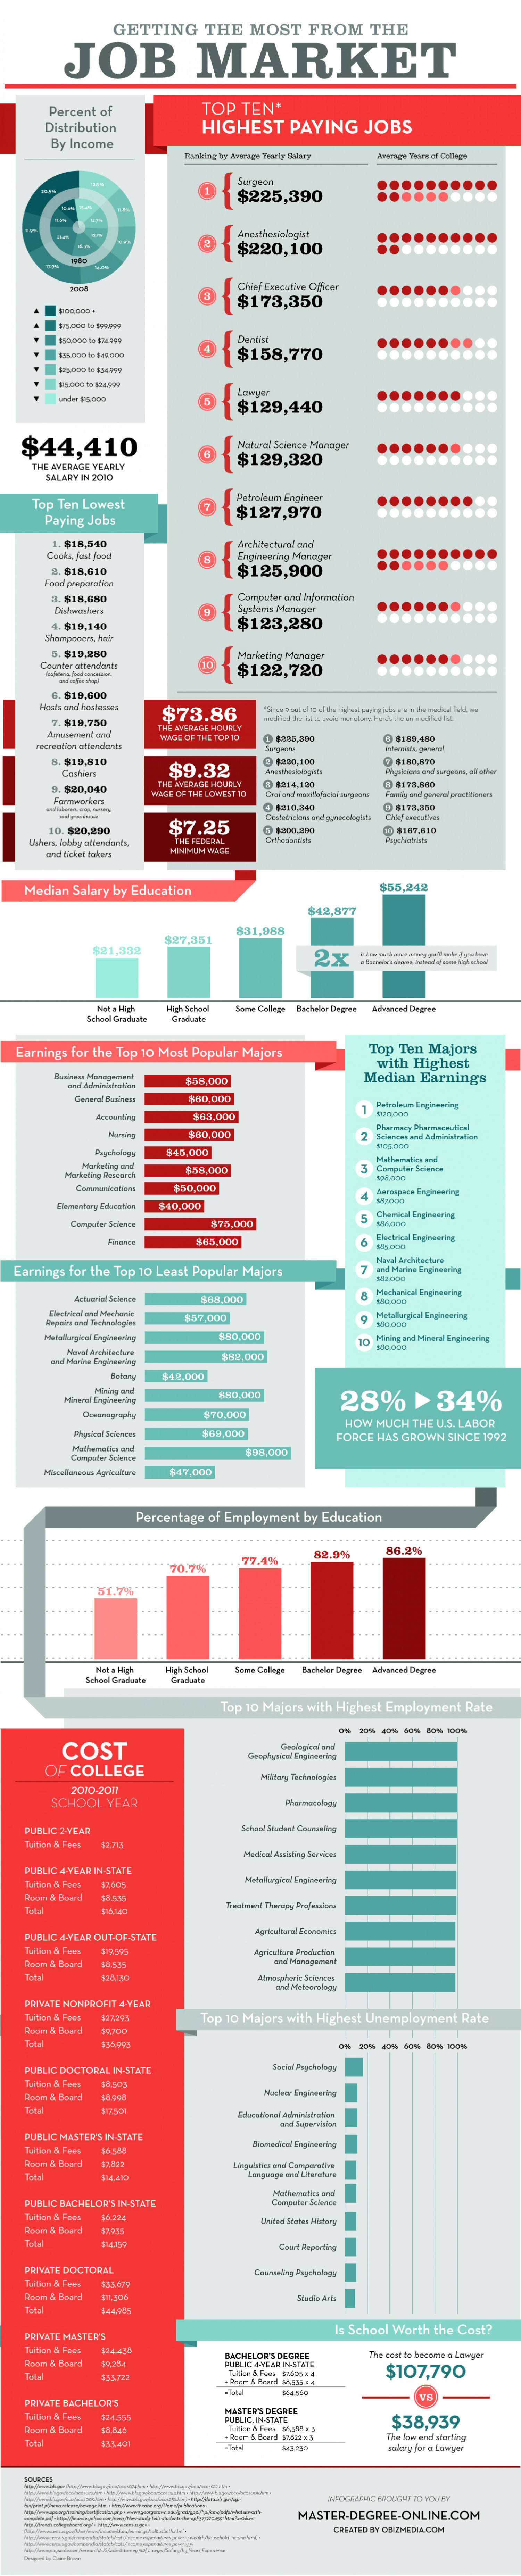 Getting the Most From the Job Market Infographic